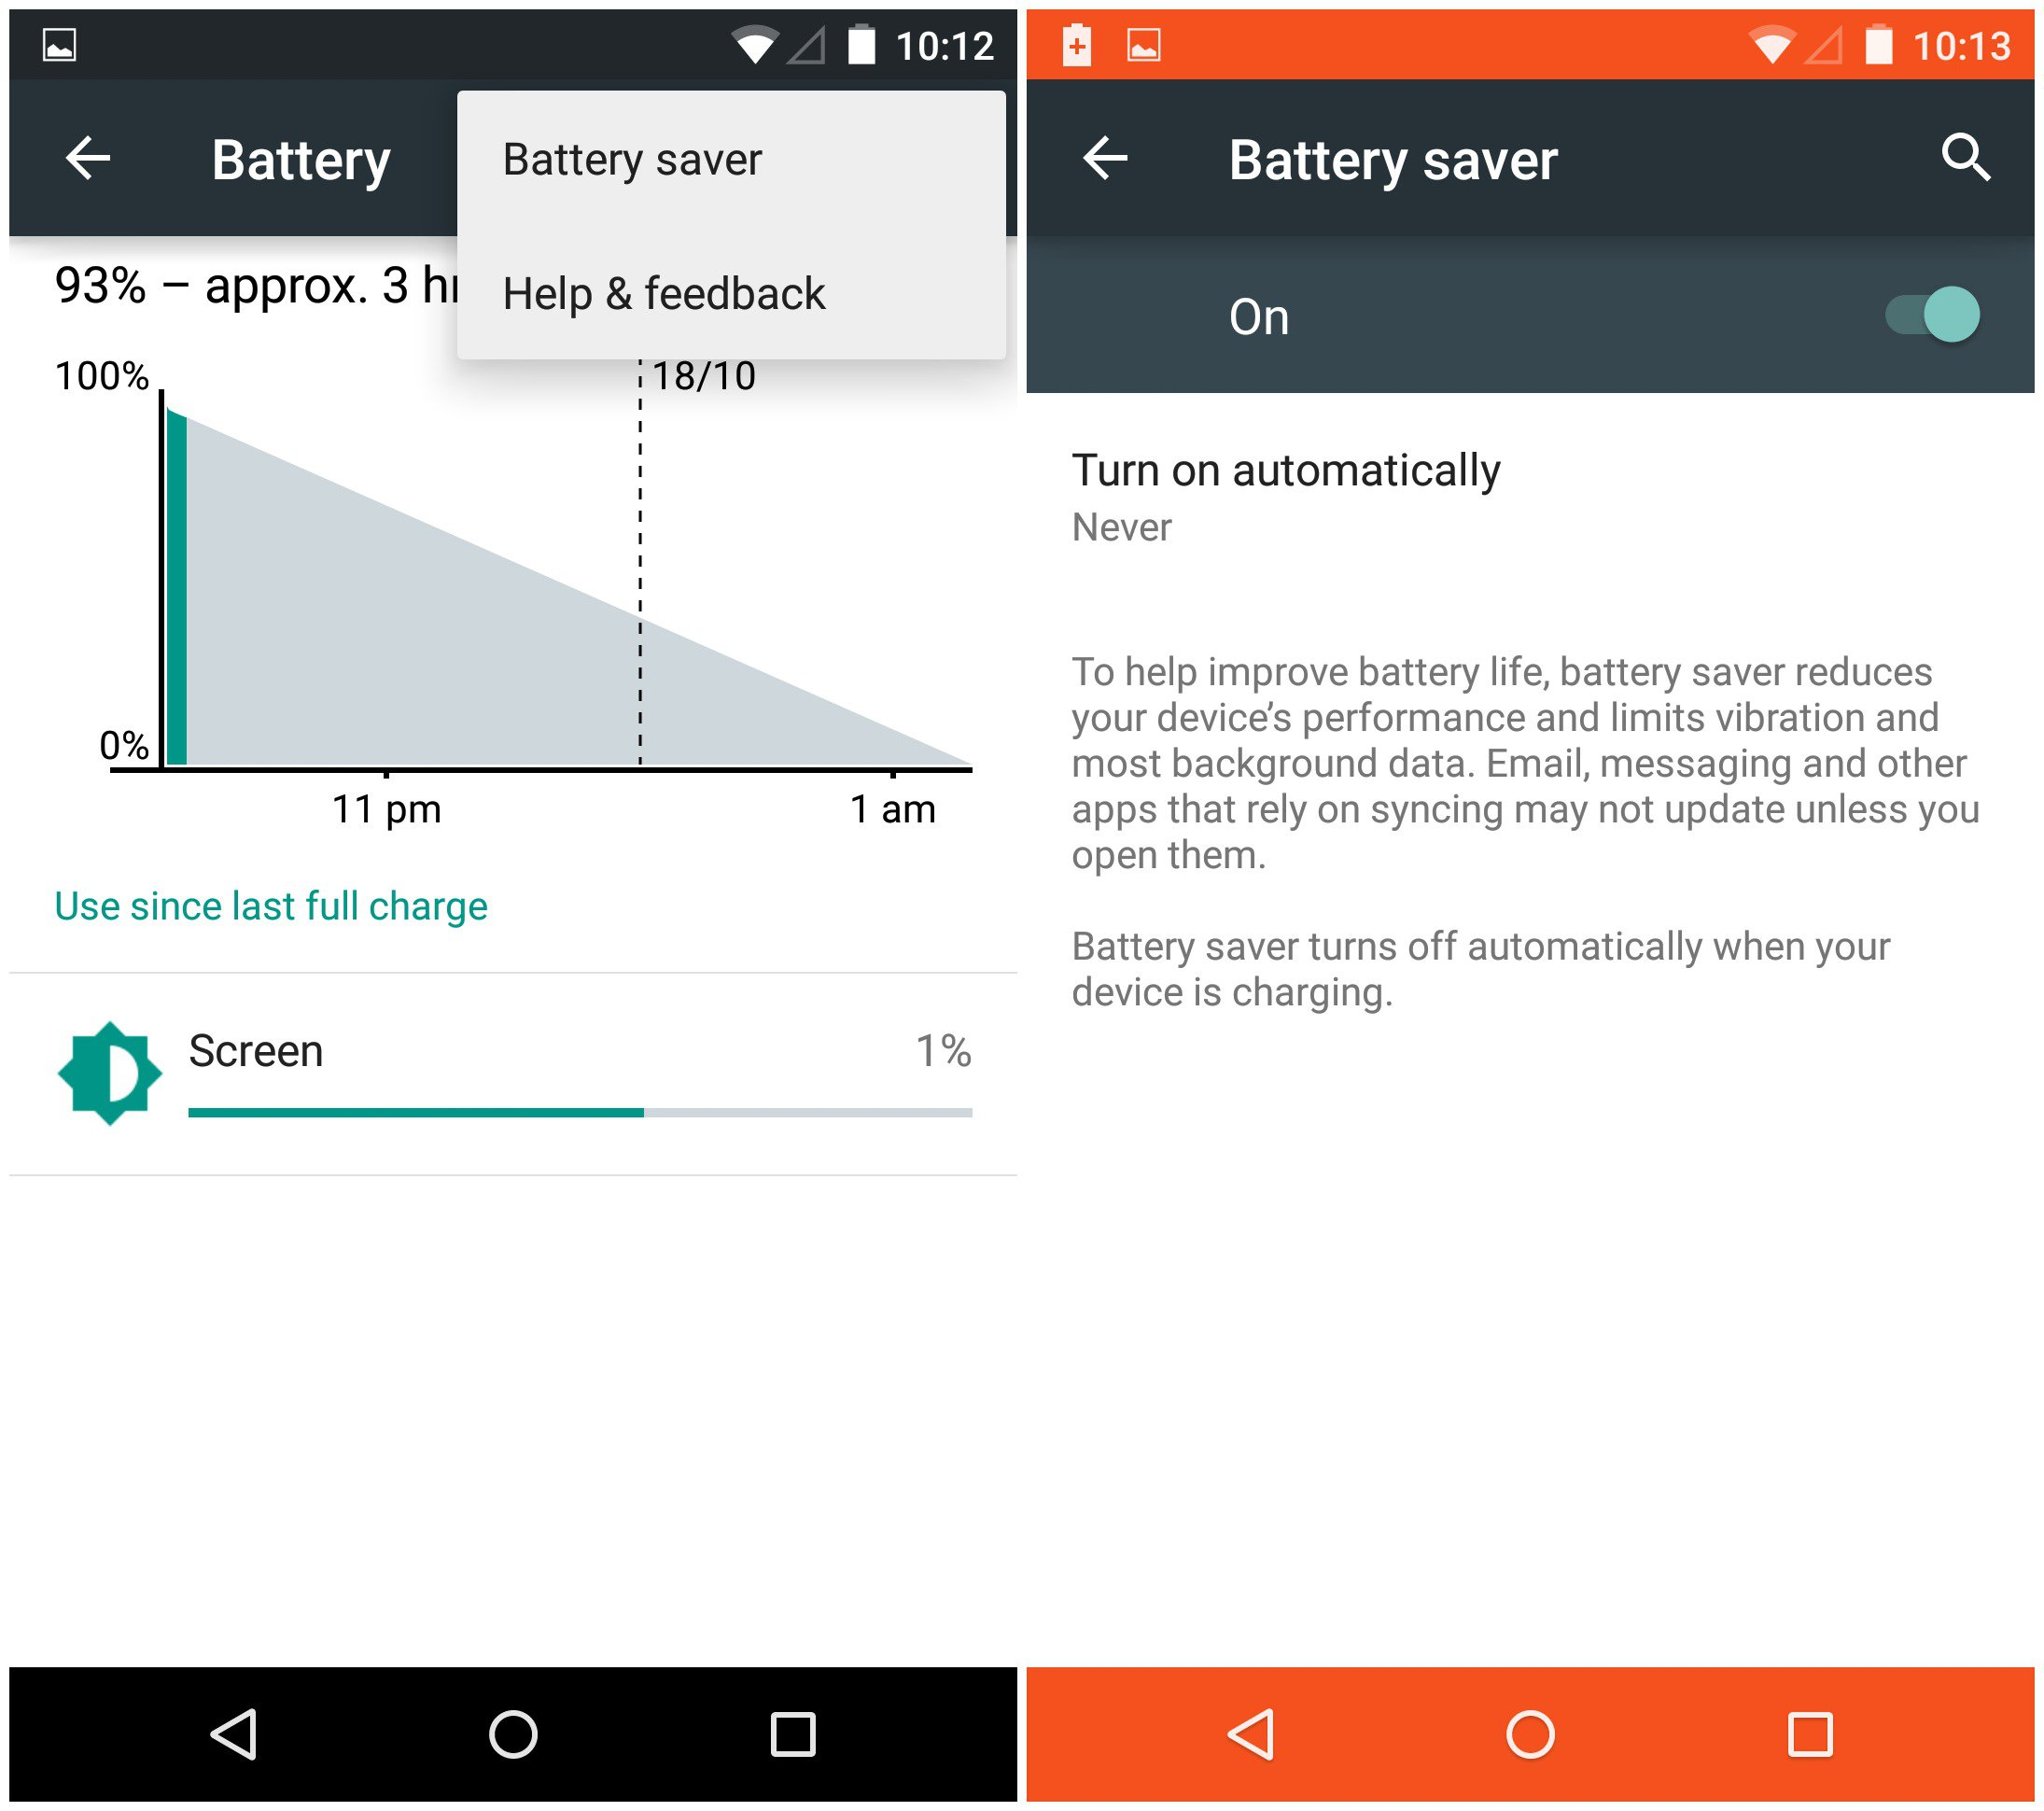 How To Use Battery Saver On Android 5.0 Lollipop